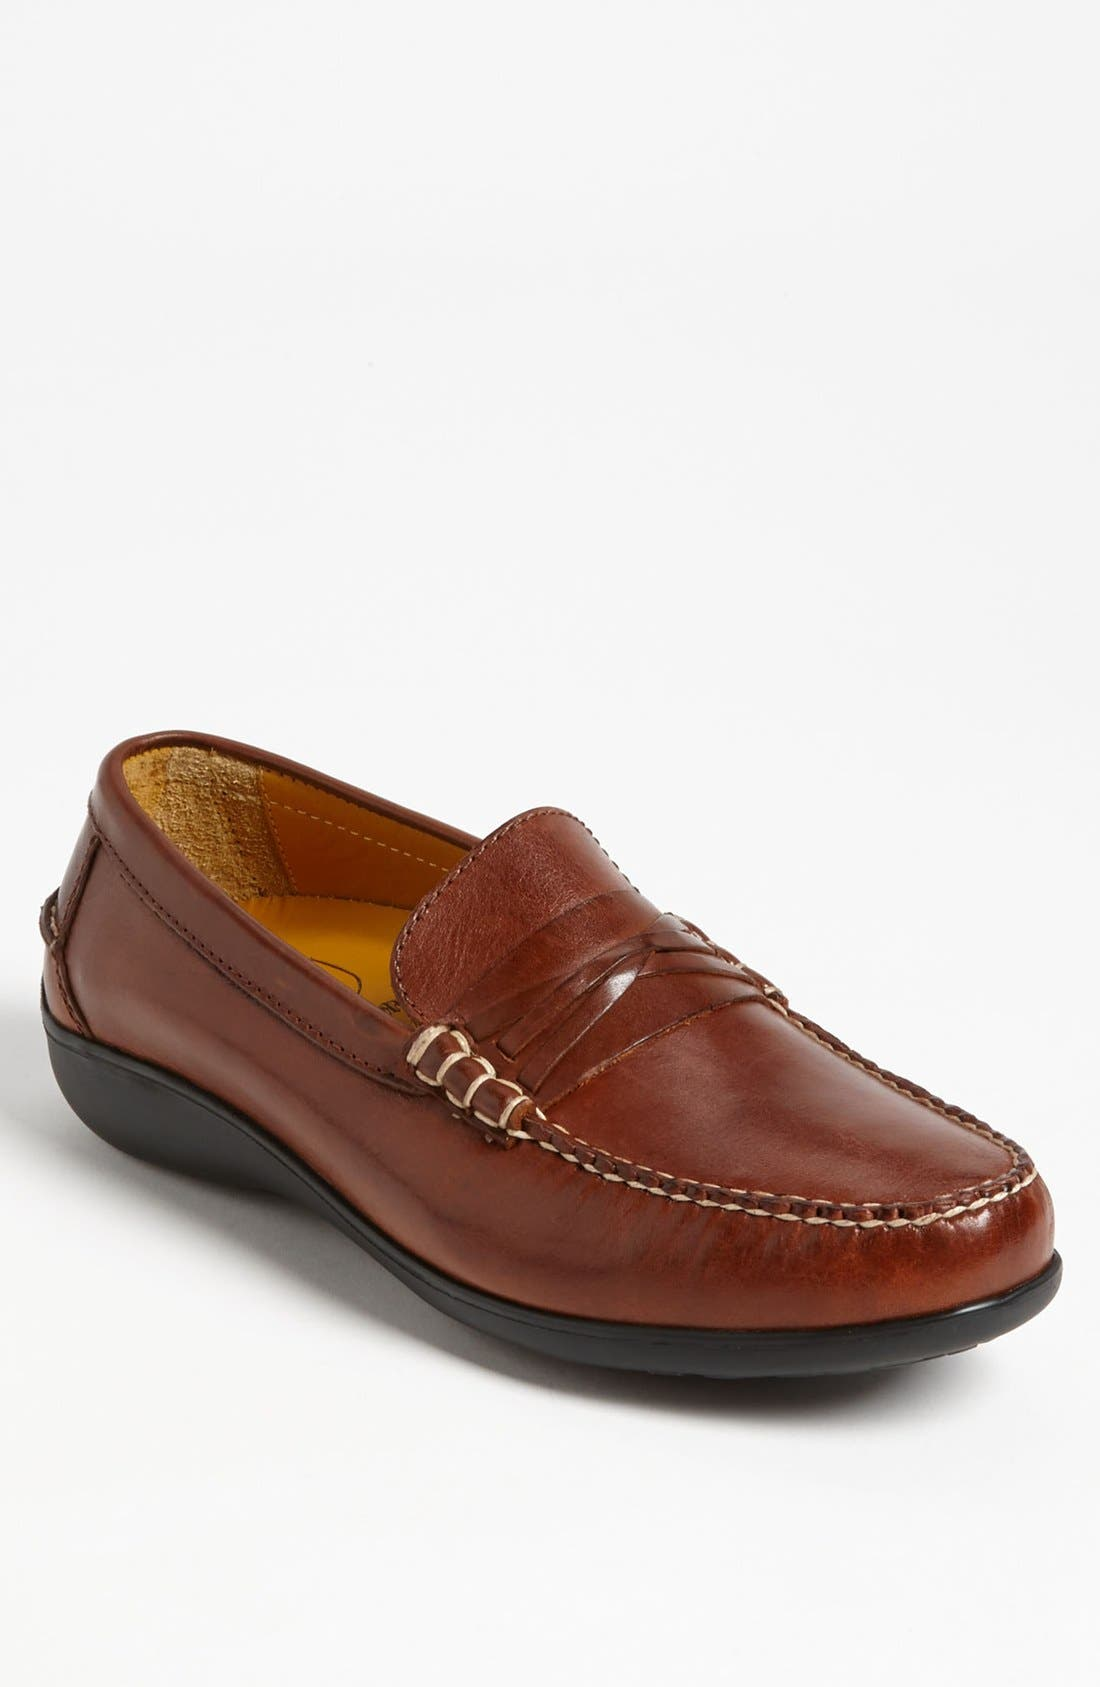 NEIL M Truman Loafer